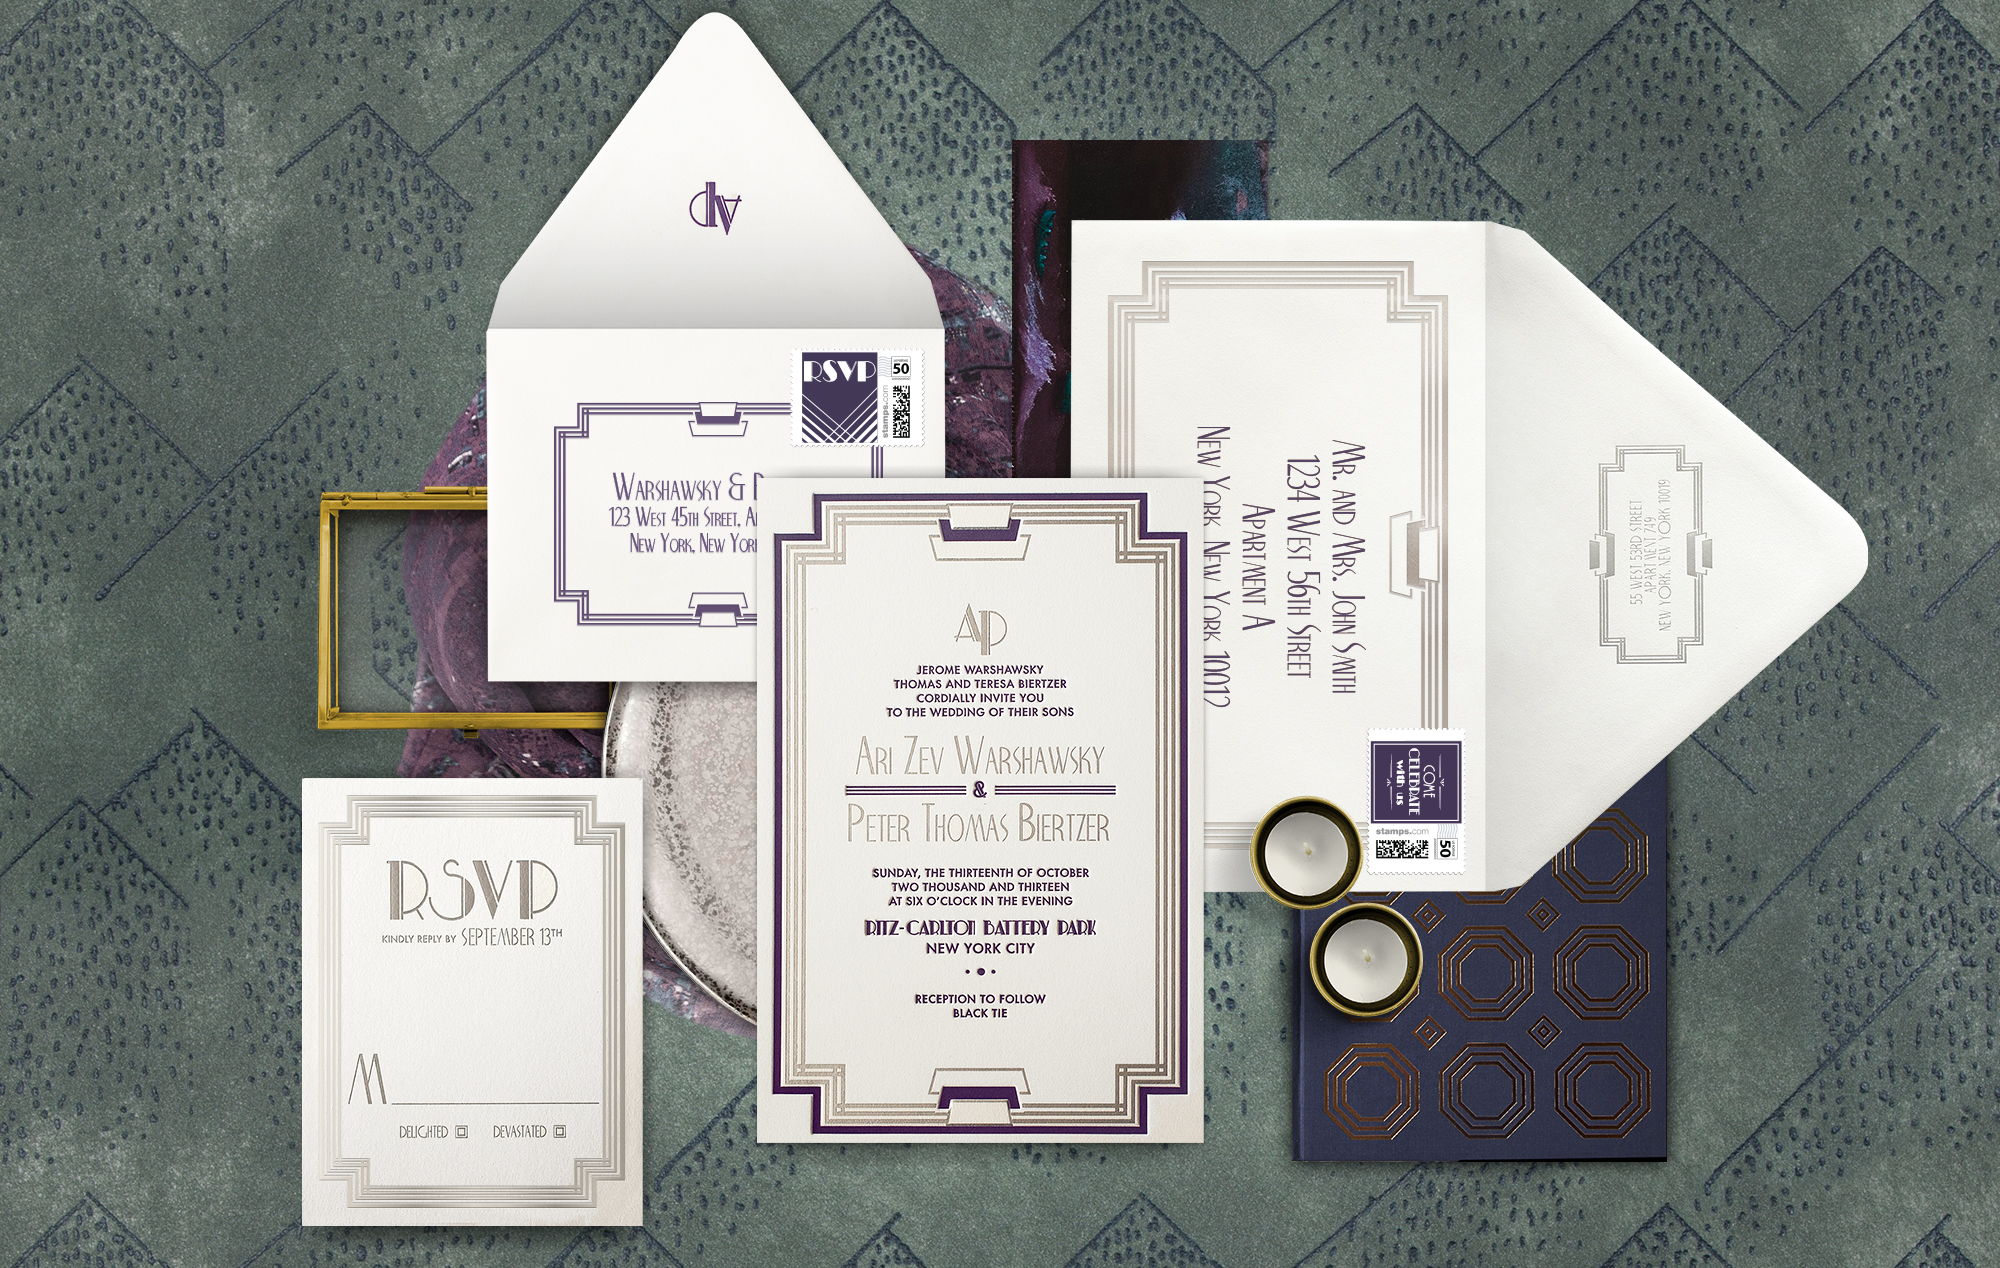 Empire State Building inspired wedding invitation